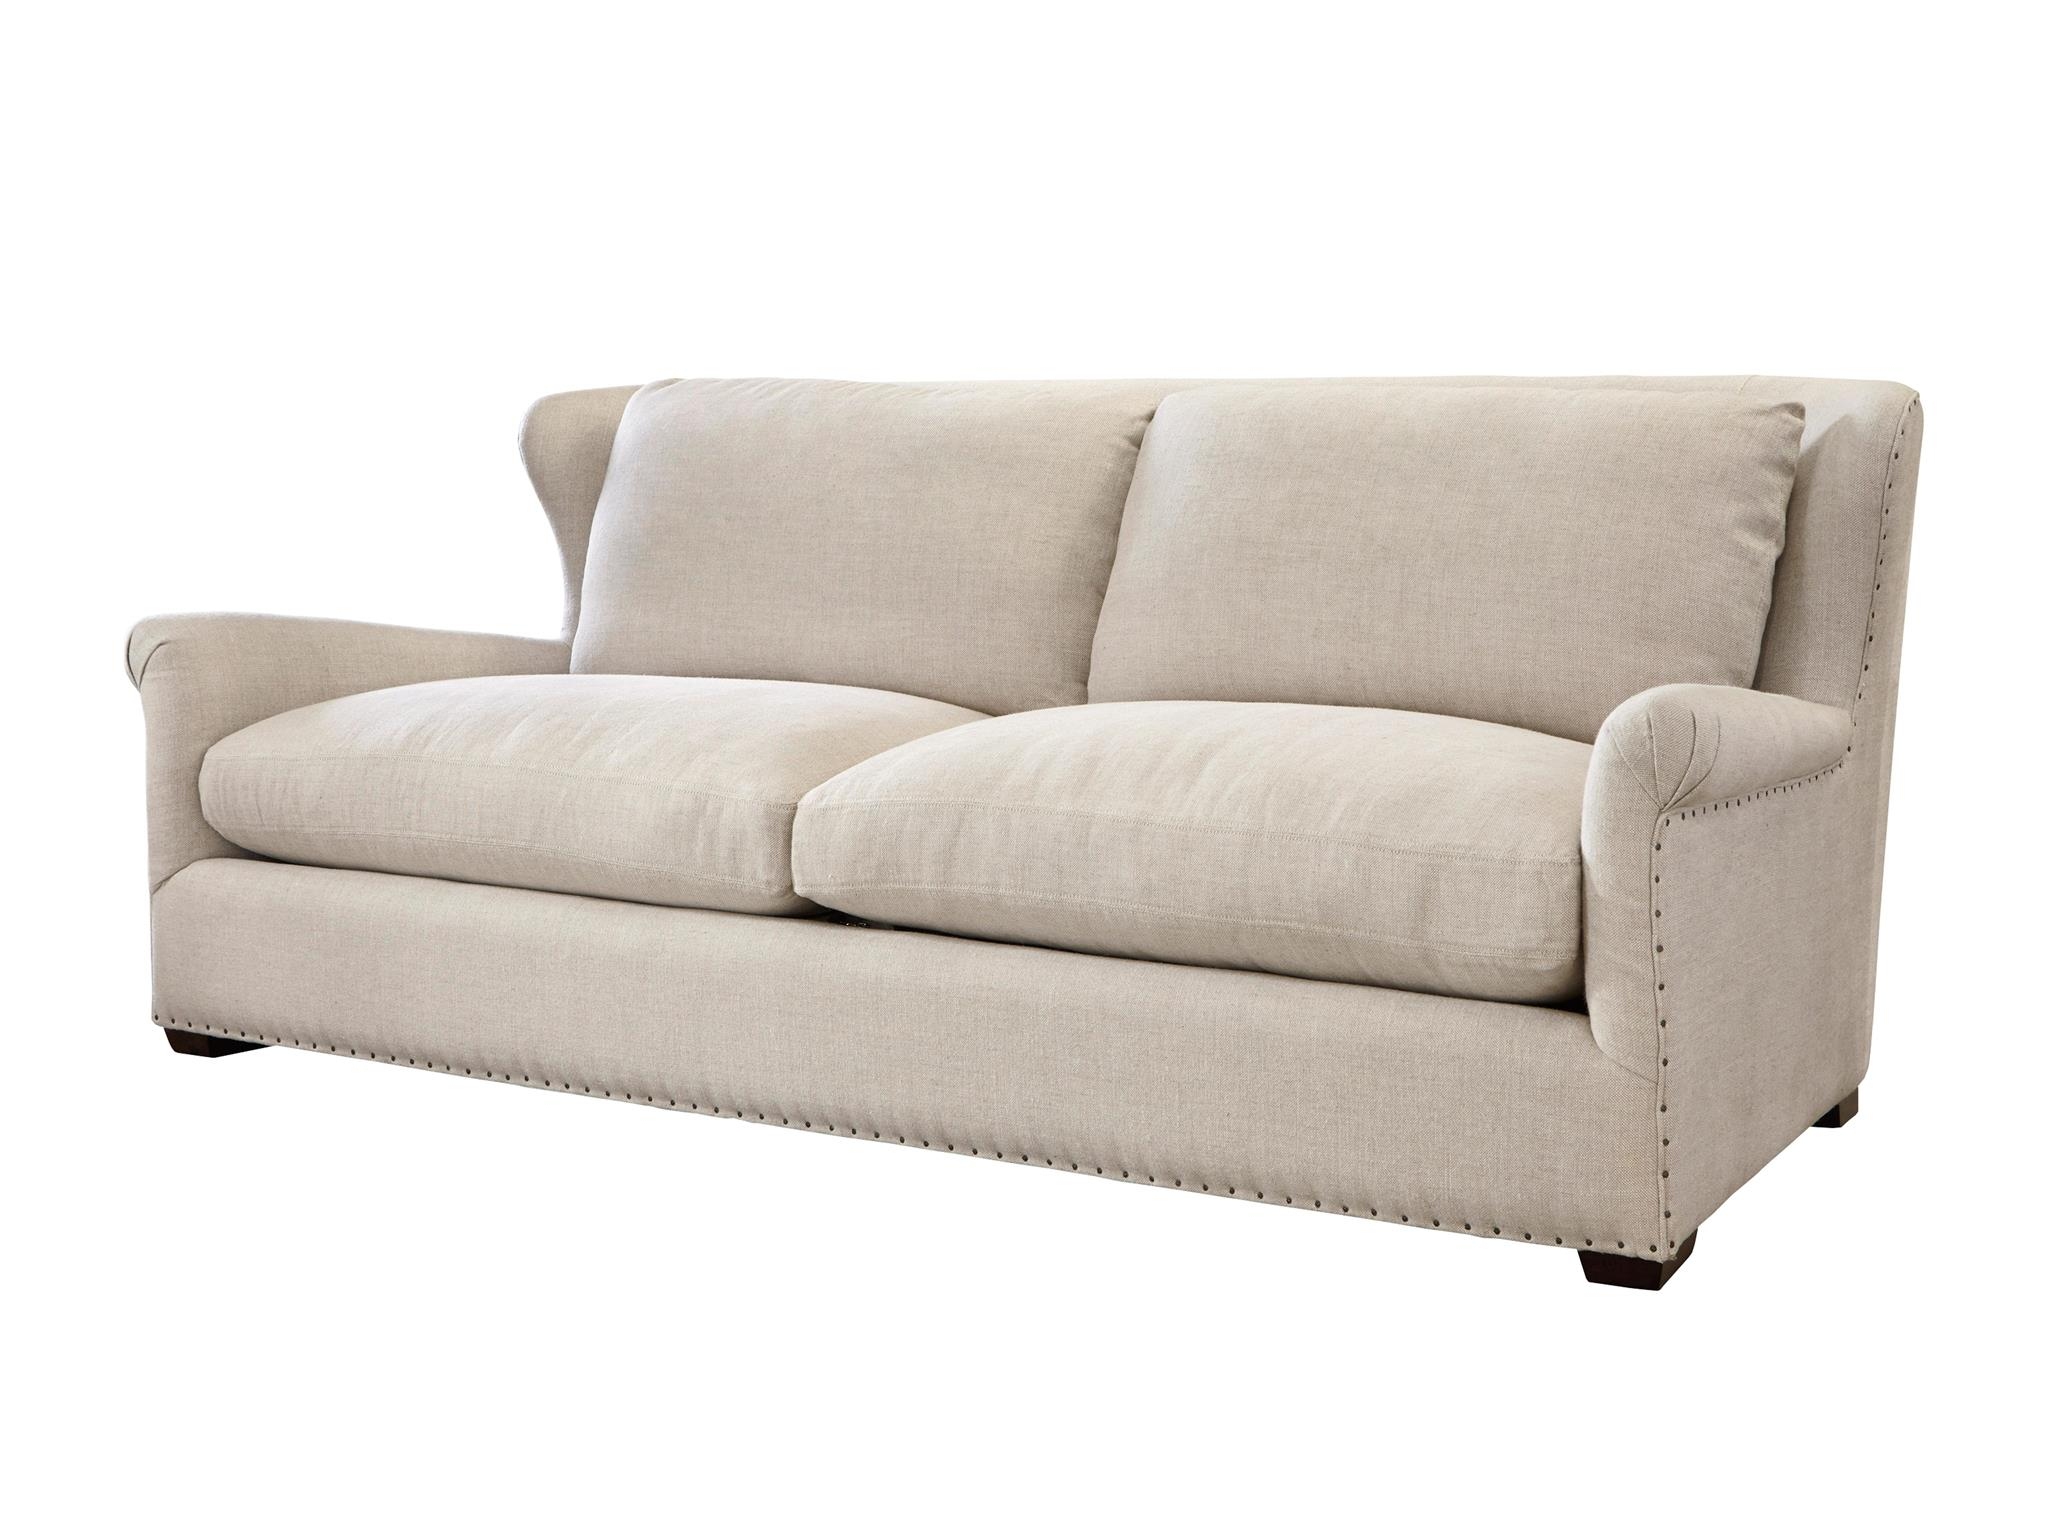 Universal Furniture | Moderne Muse | Haven Sofa For Haven Sofa Chairs (Photo 1 of 25)